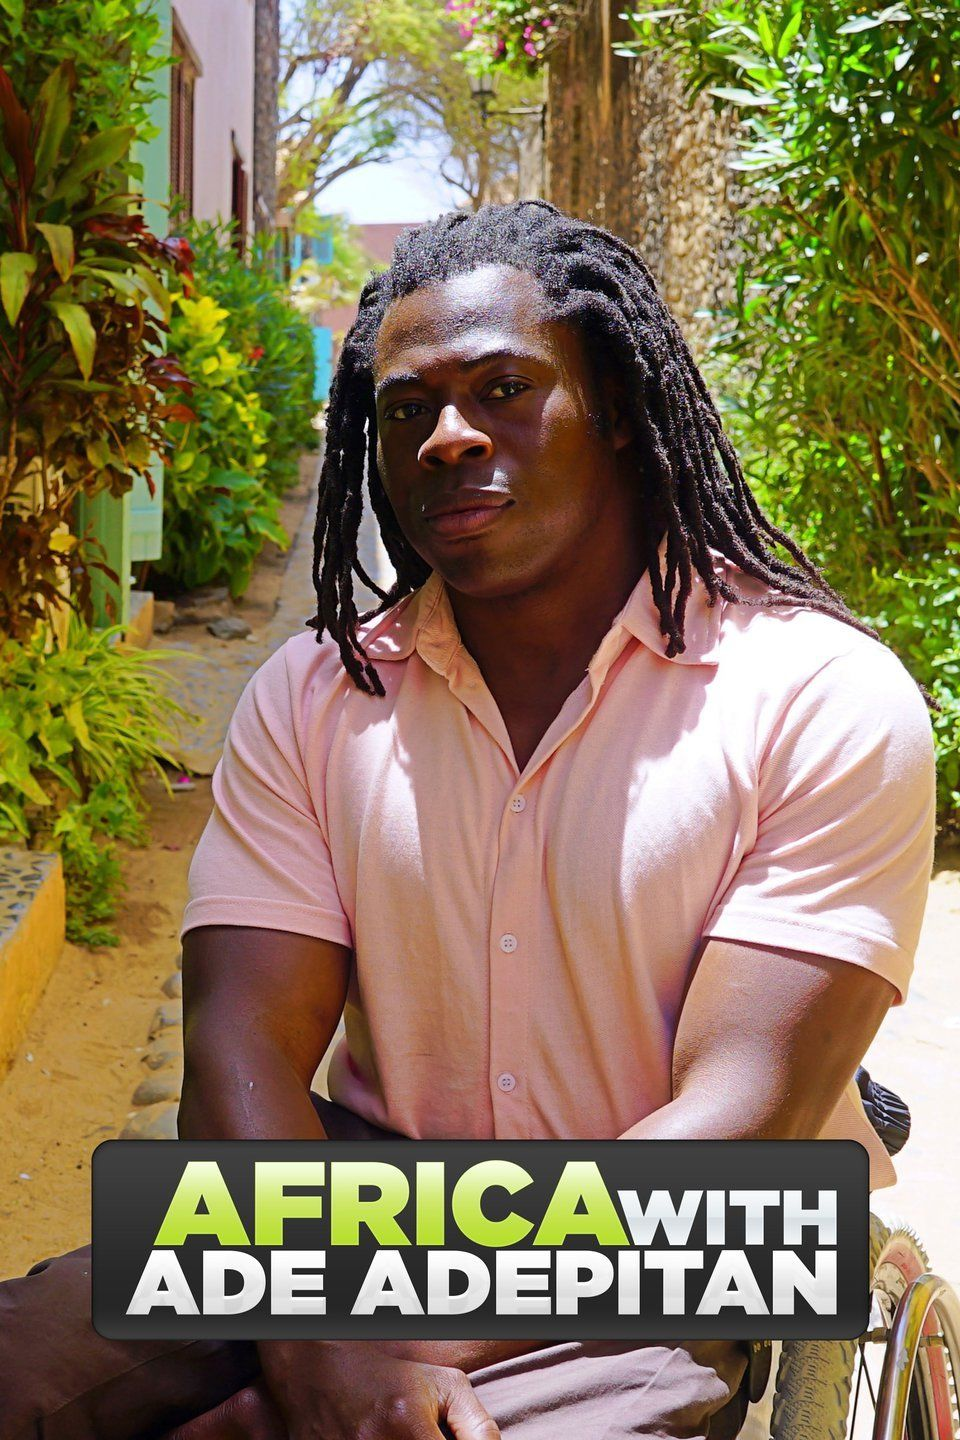 Africa with Ade Adepitan on FREECABLE TV